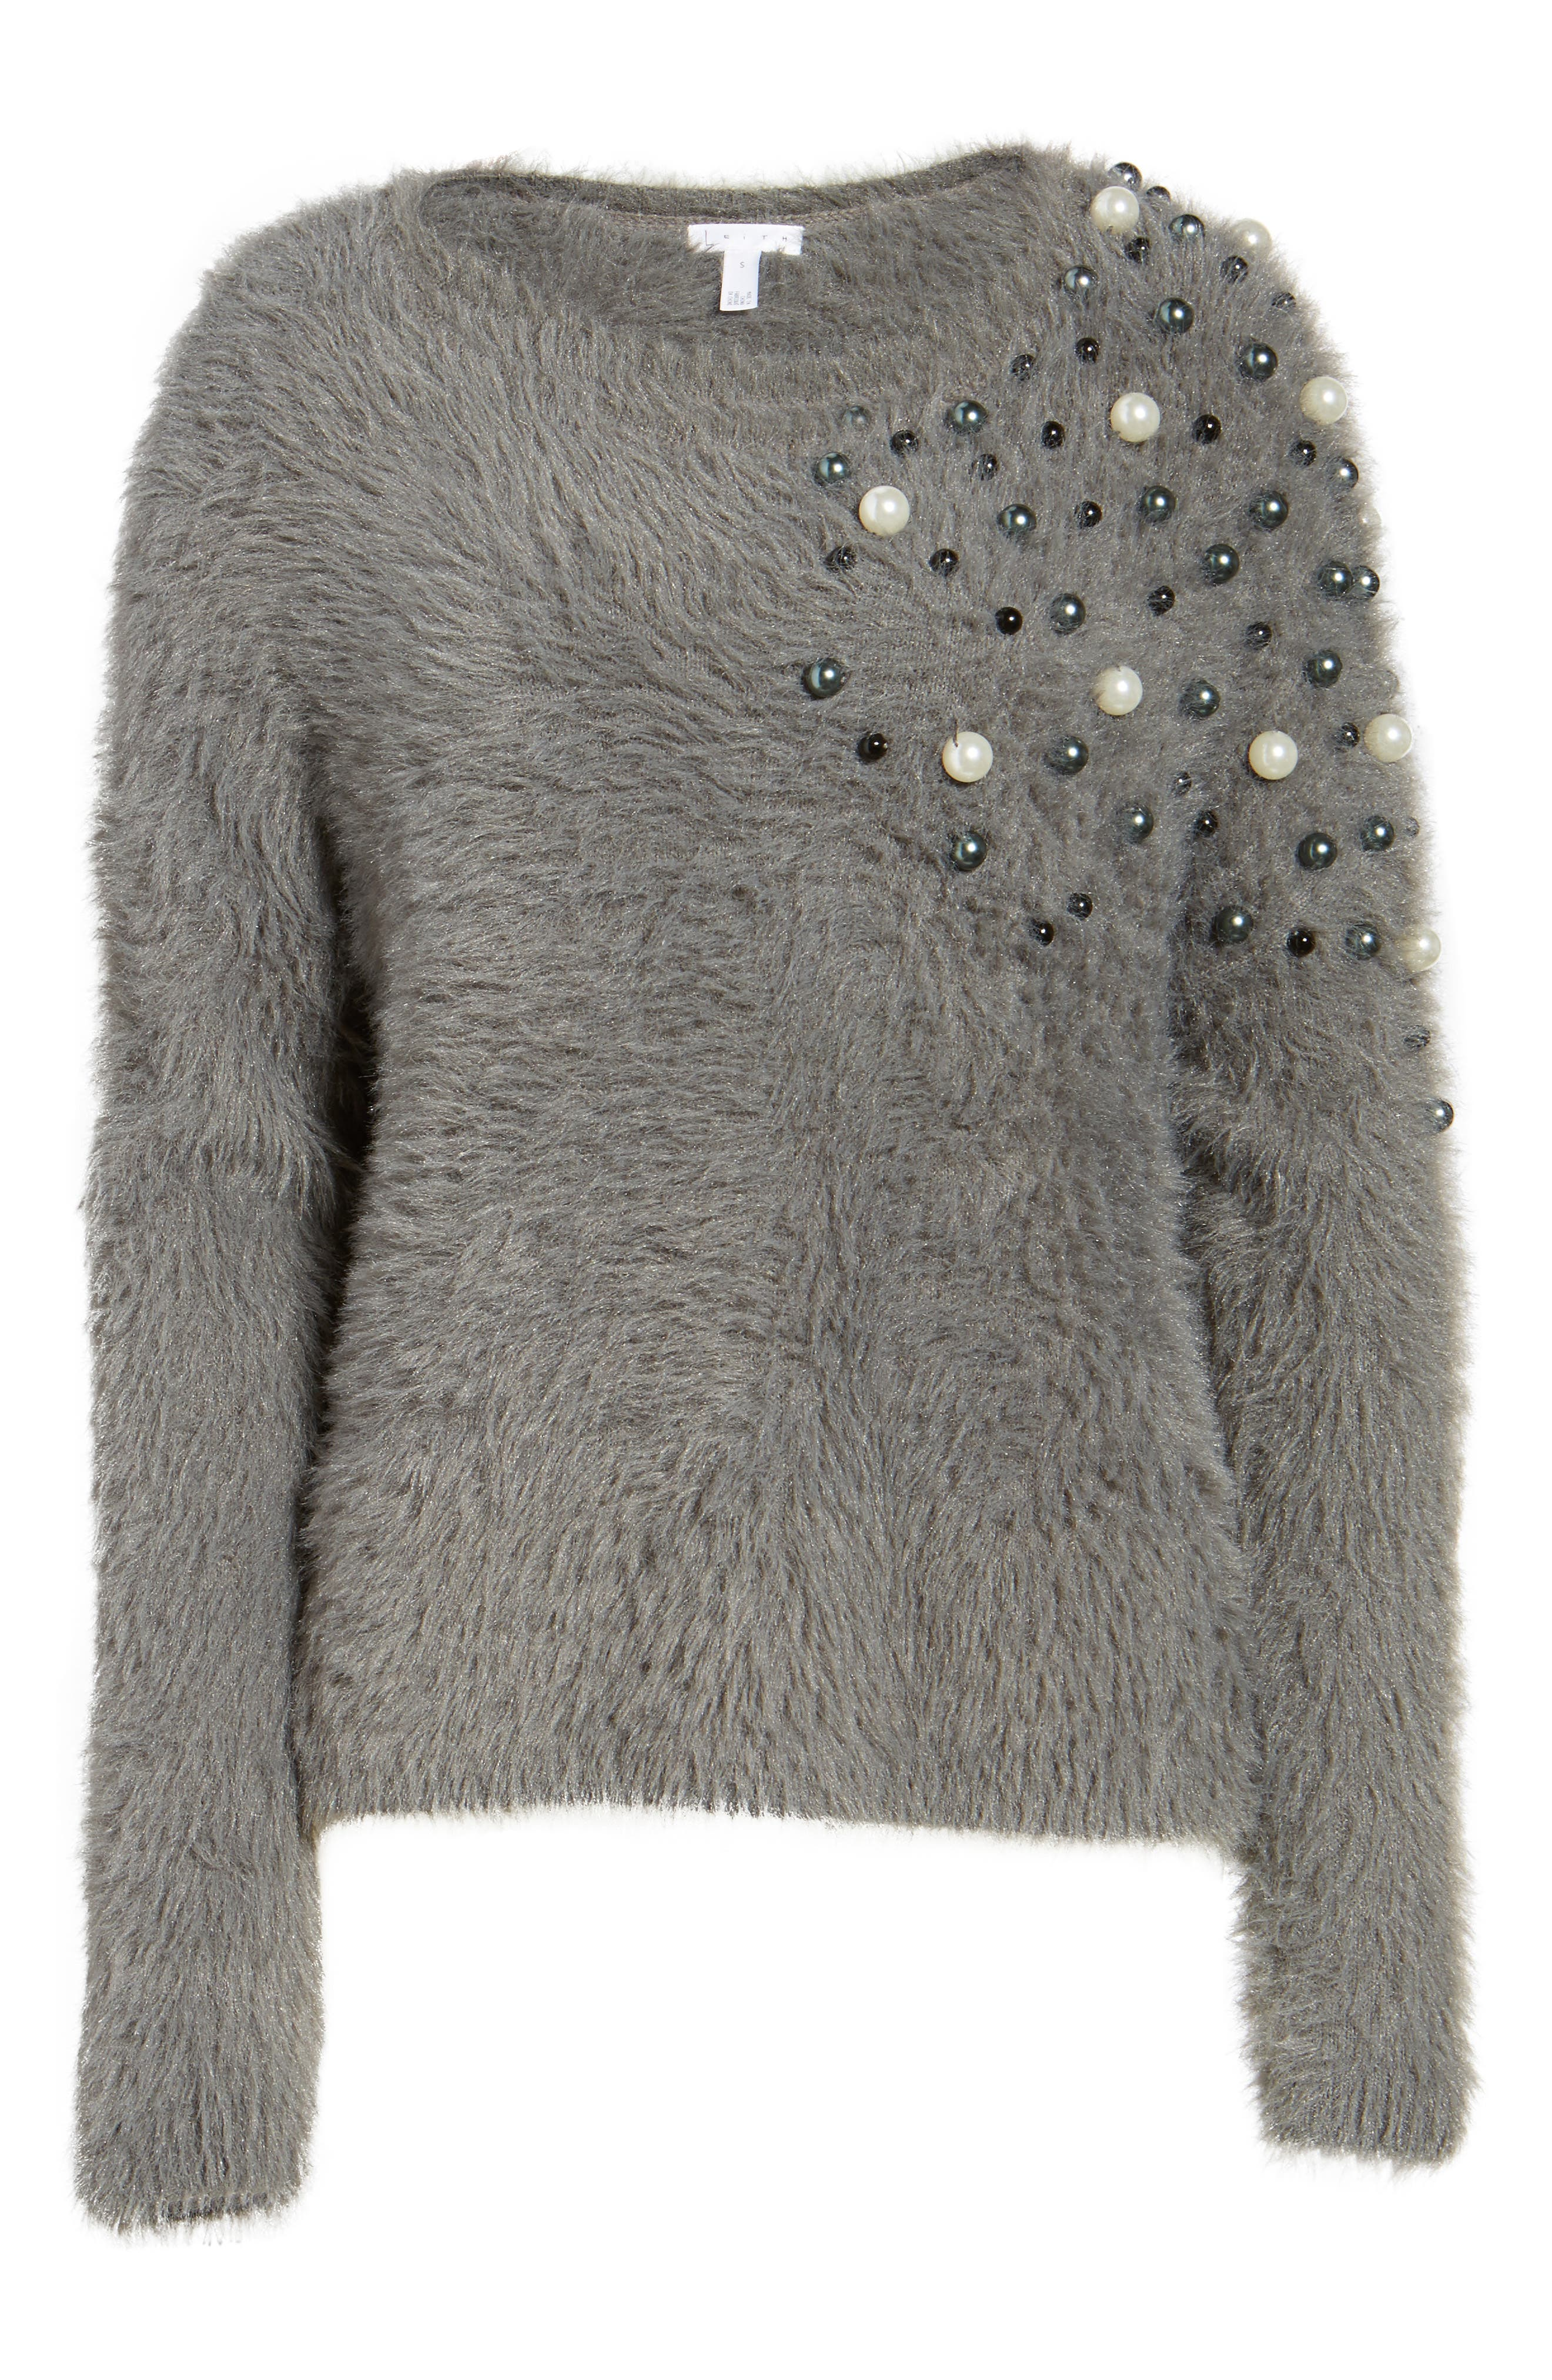 Embellished Faux Fur Sweater,                             Alternate thumbnail 6, color,                             021